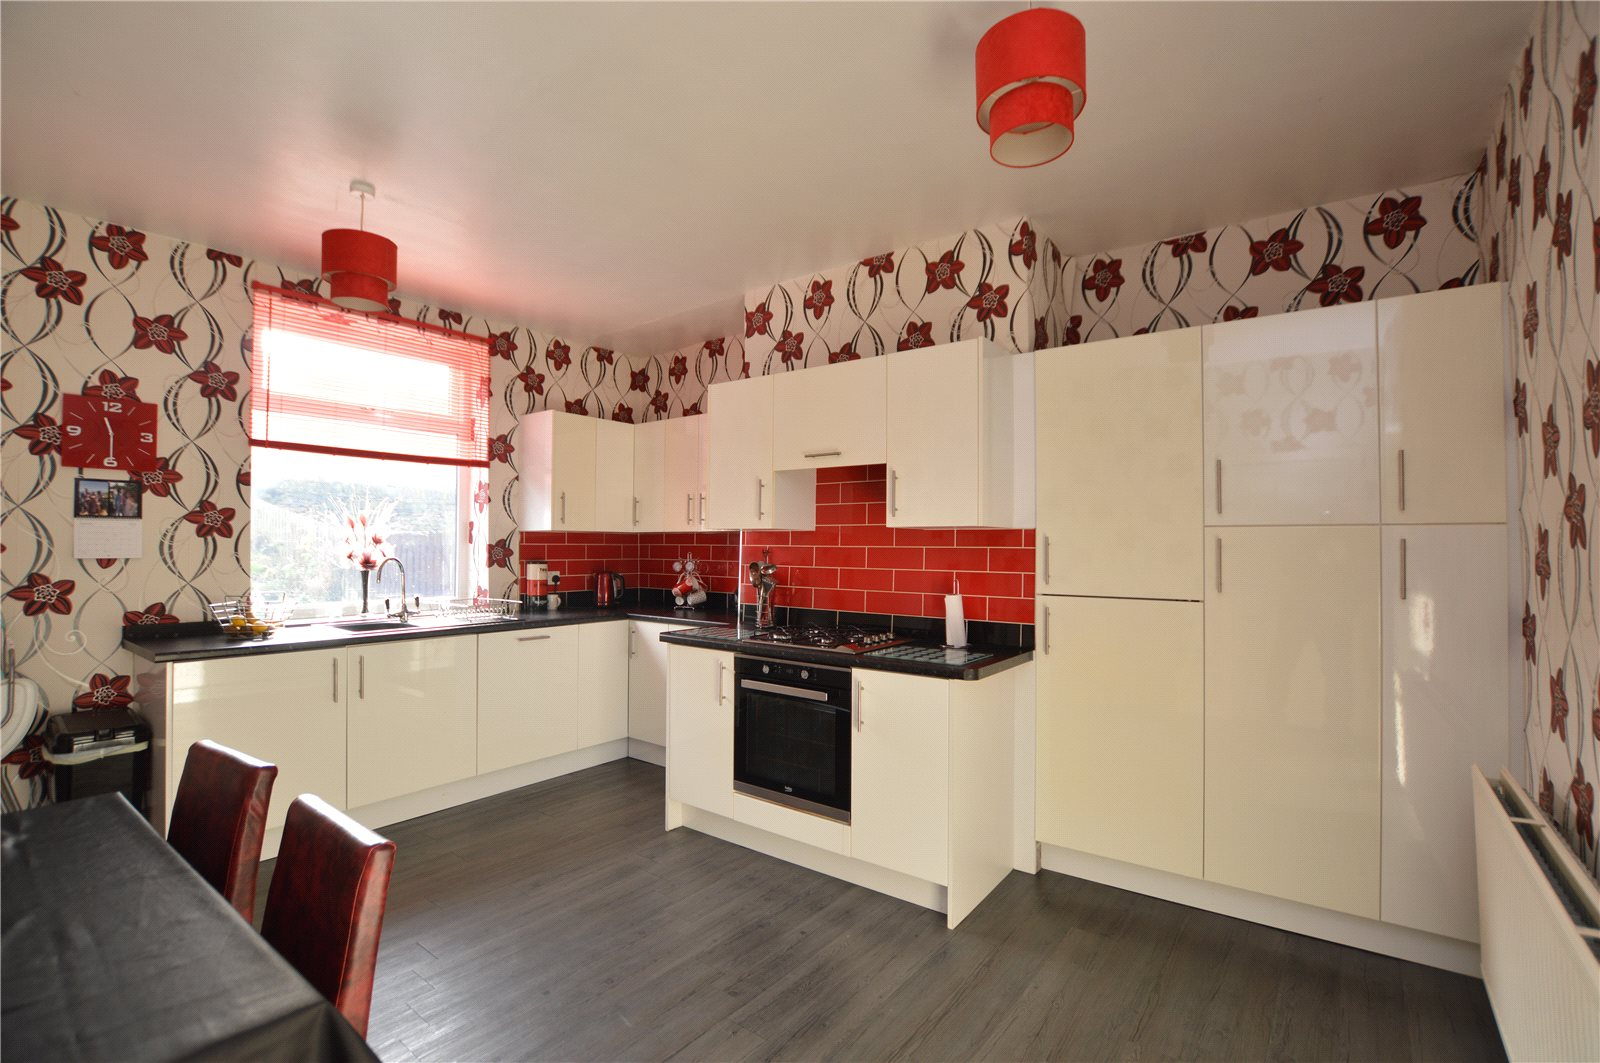 property for sale in Batley, interior kitchen with modern cabinets and decor